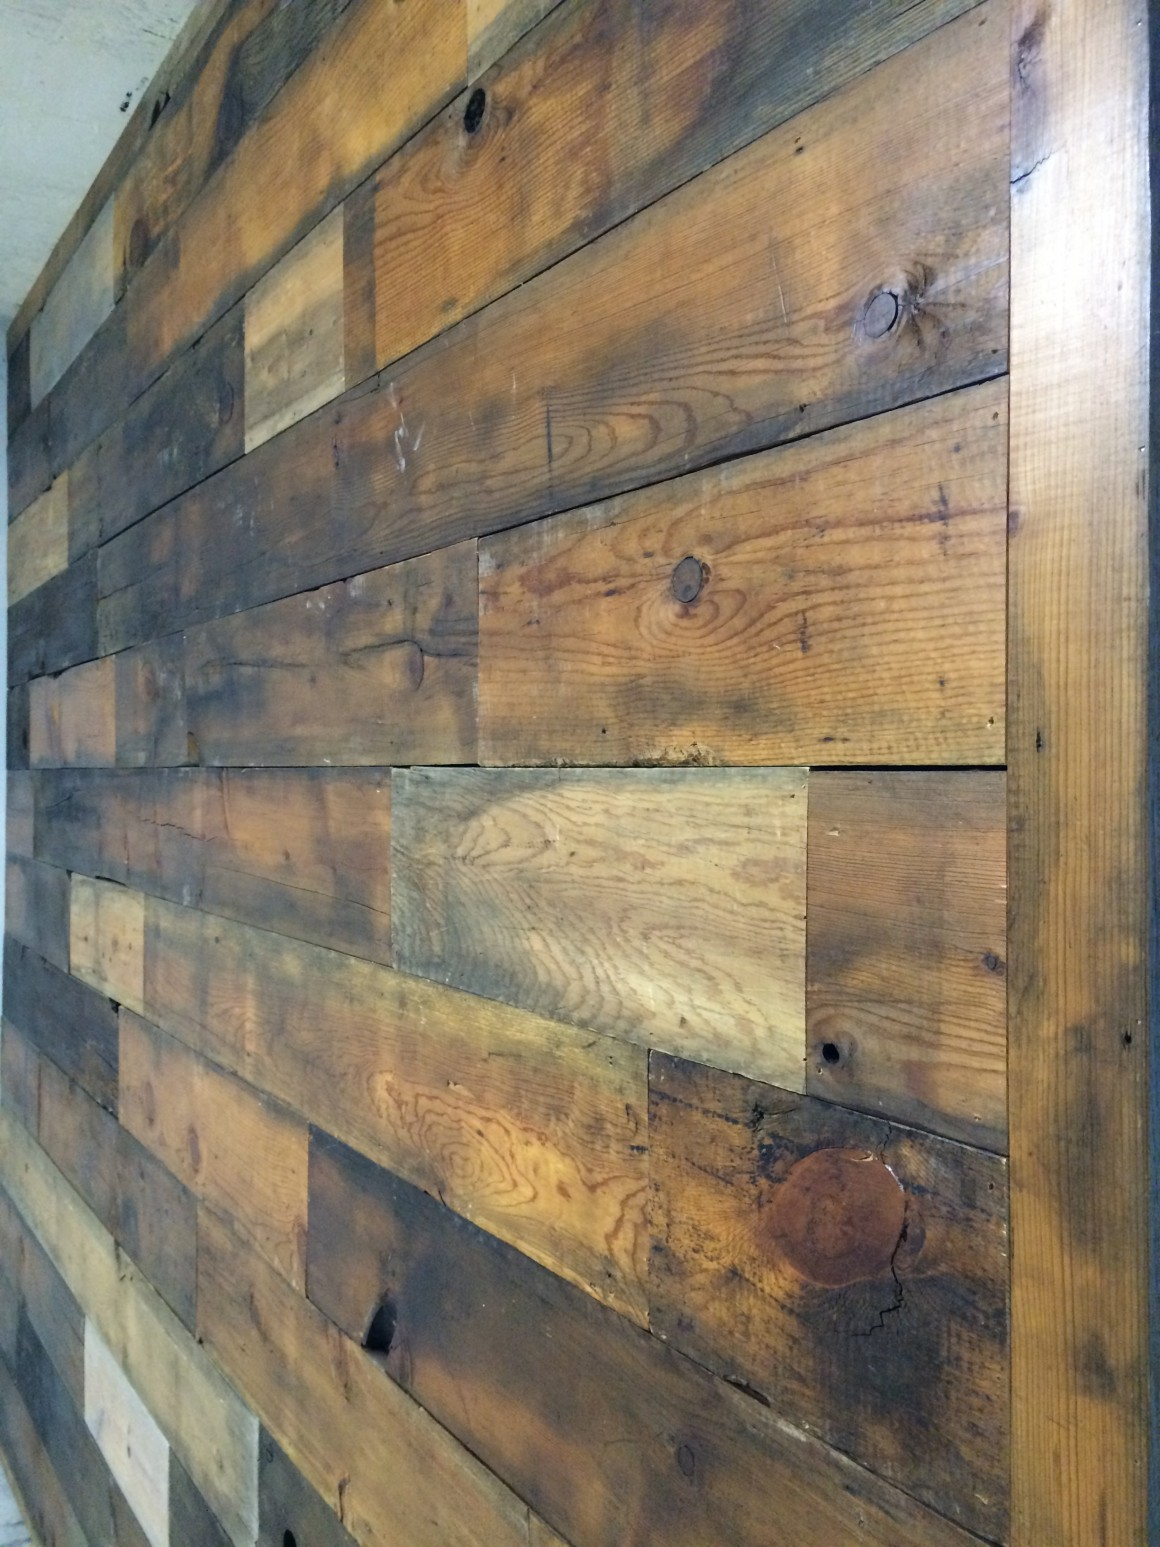 Reclamation administration reclaimed wood for Reclaimed wood portland oregon